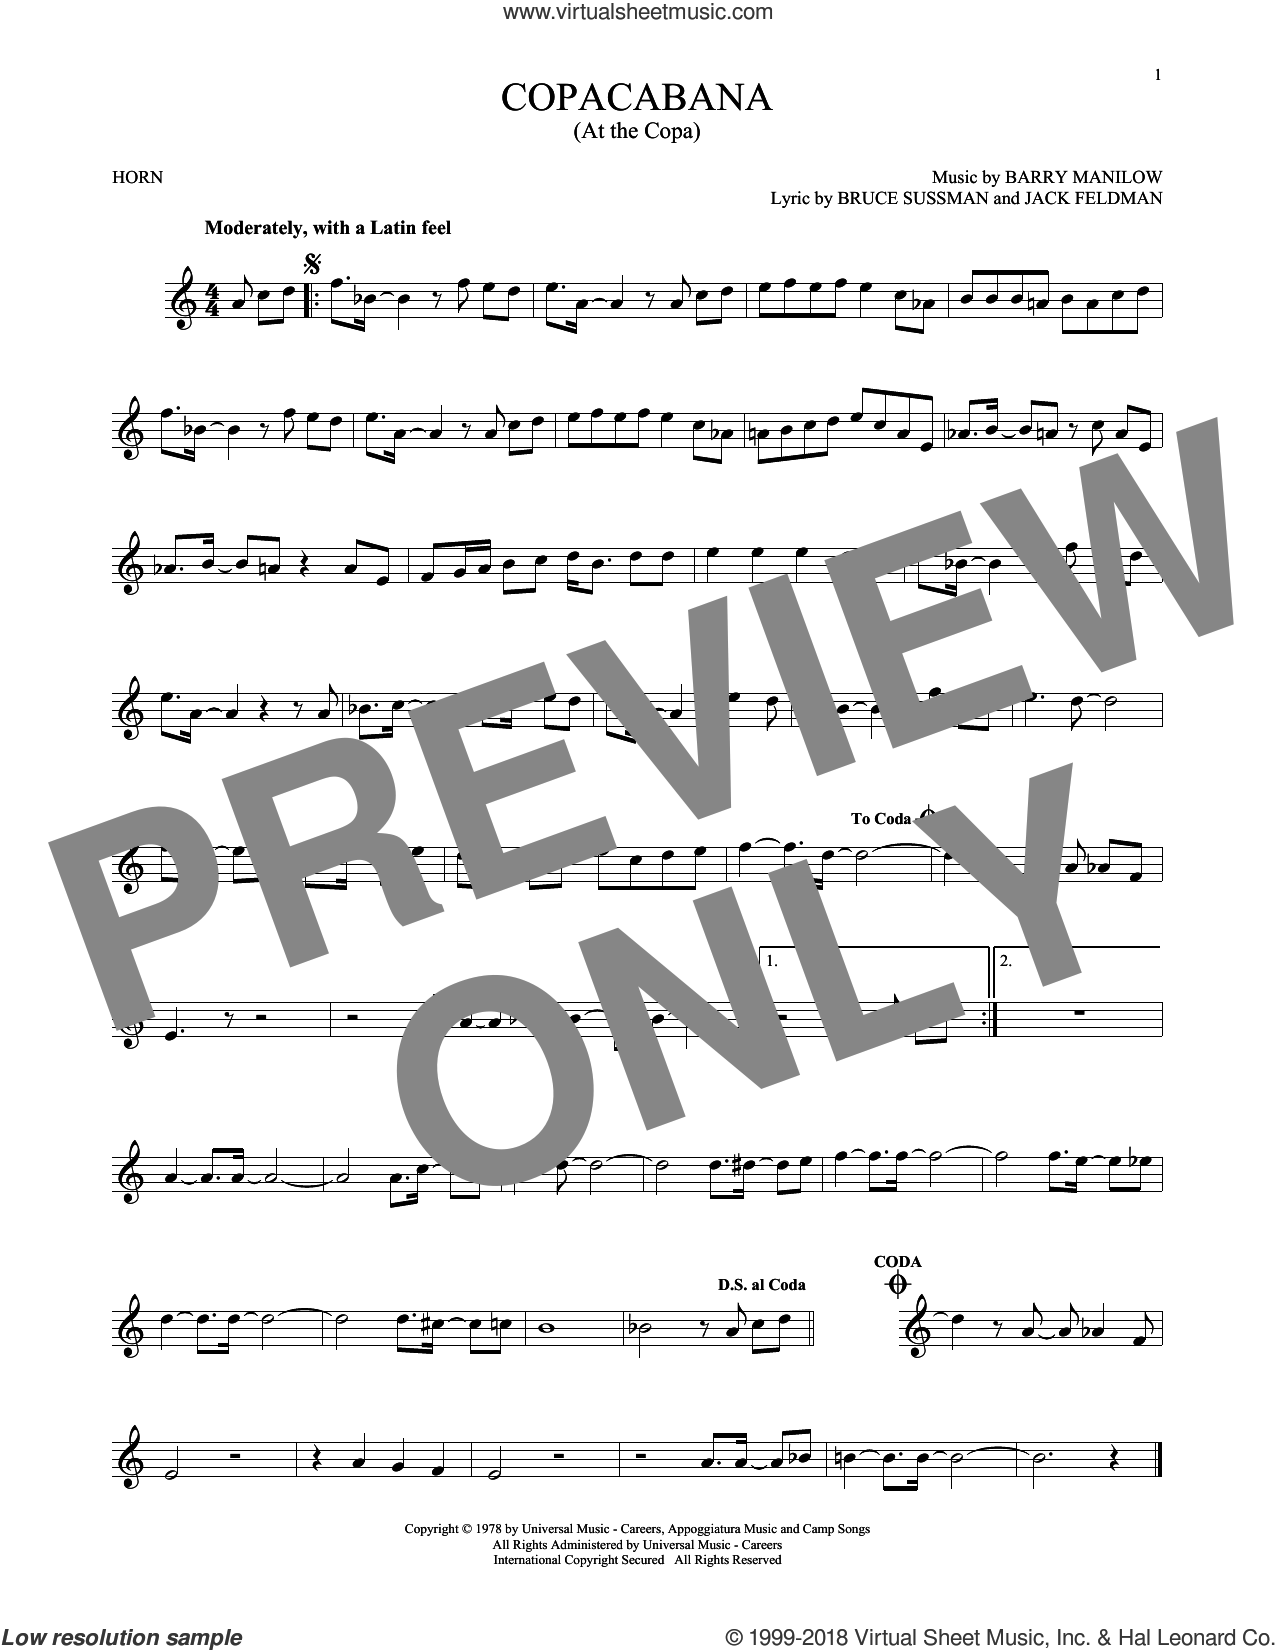 Copacabana (At The Copa) sheet music for horn solo by Barry Manilow, Bruce Sussman and Jack Feldman, intermediate skill level